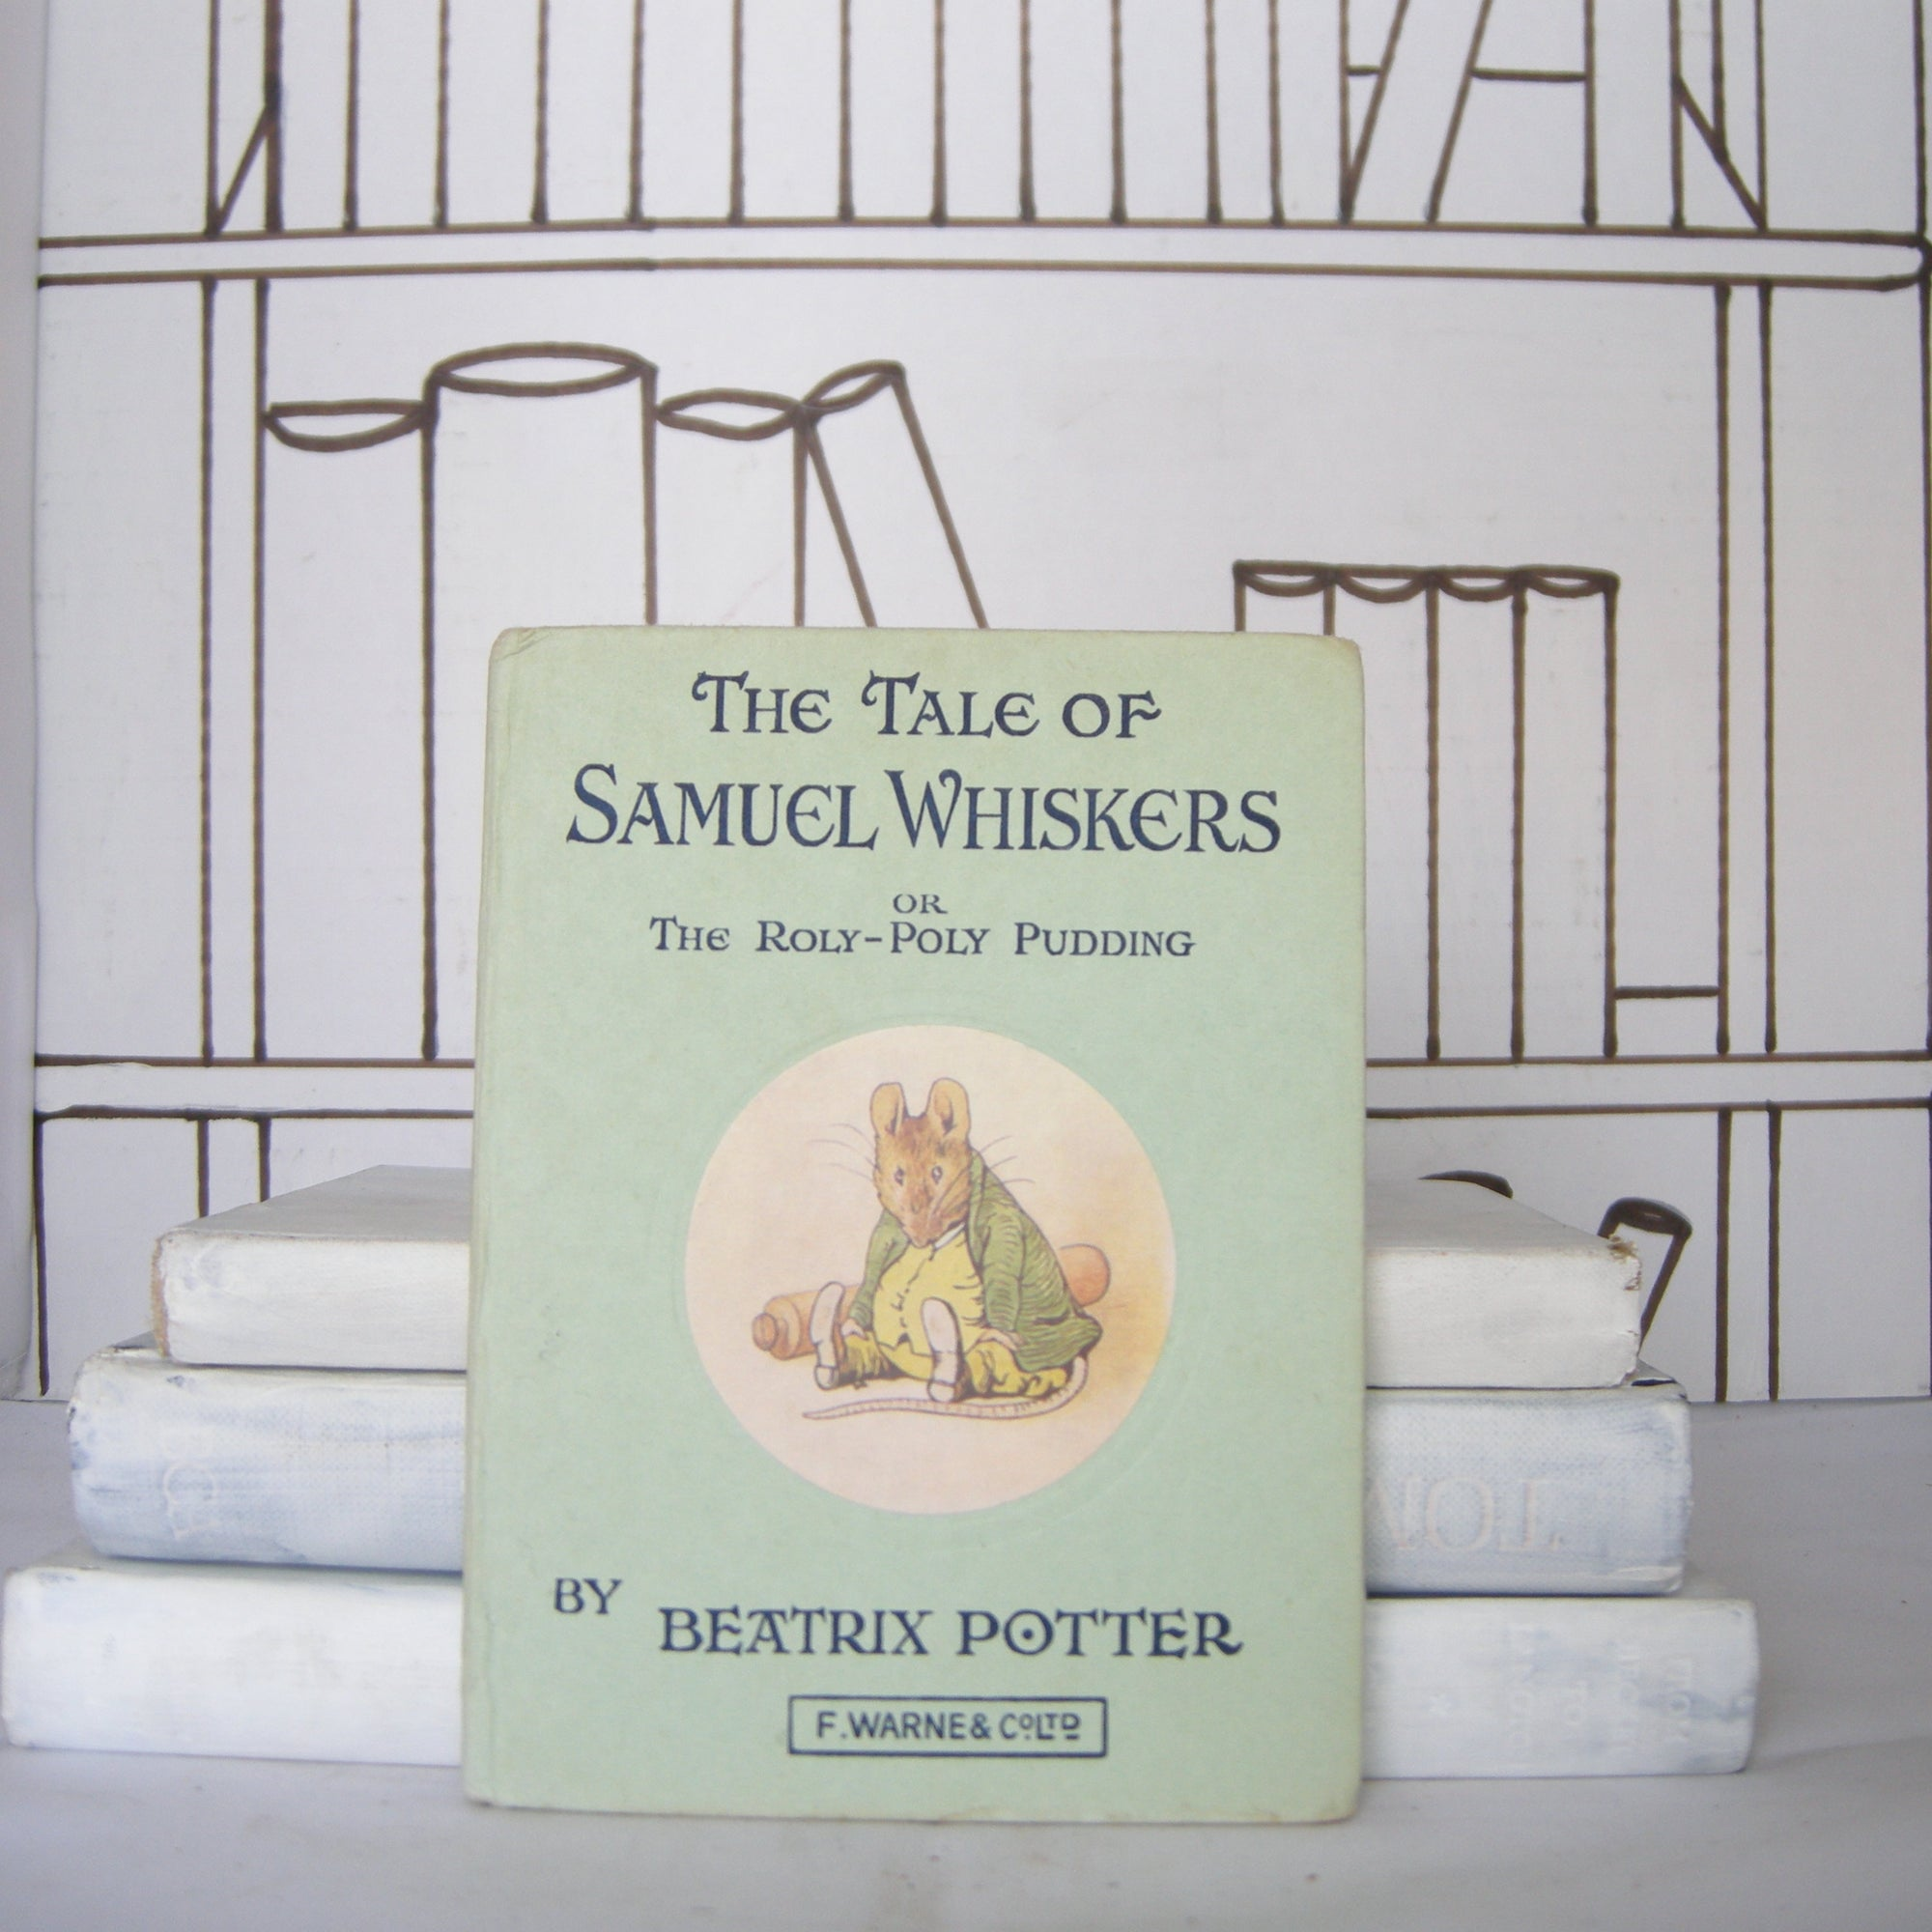 The Tale of Samuel Whiskers by Beatrix Potter (Vintage, Children)